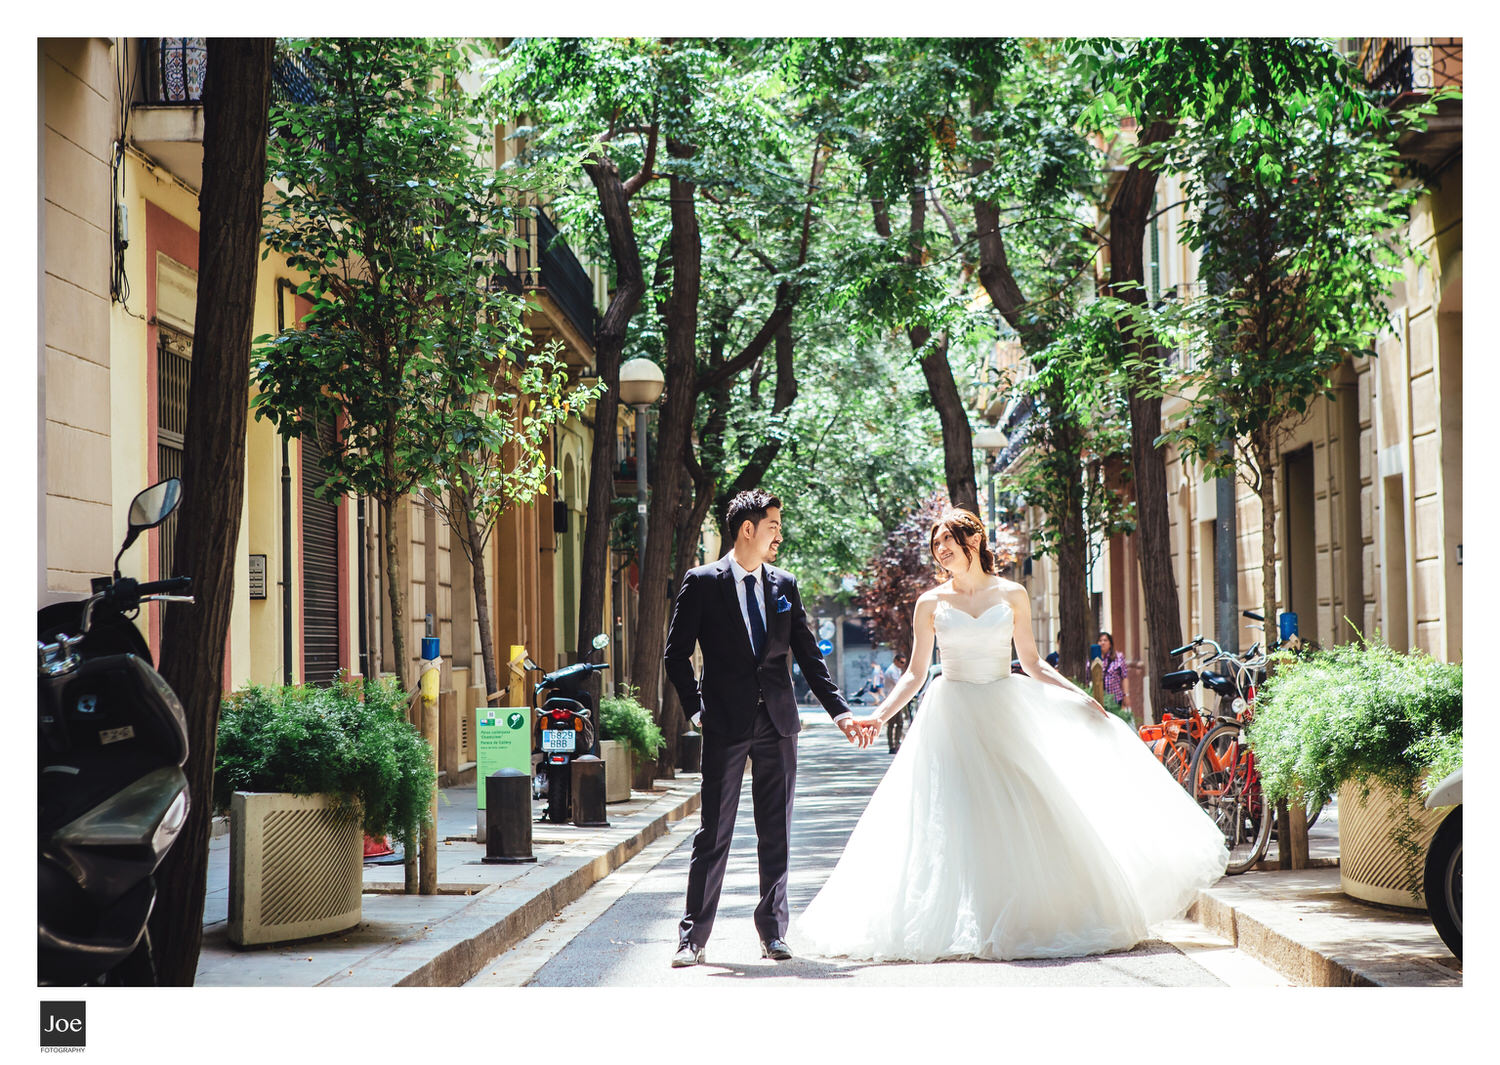 joe-fotography-04-barcelona-sagrada-familia-pre-wedding-liwei.jpg